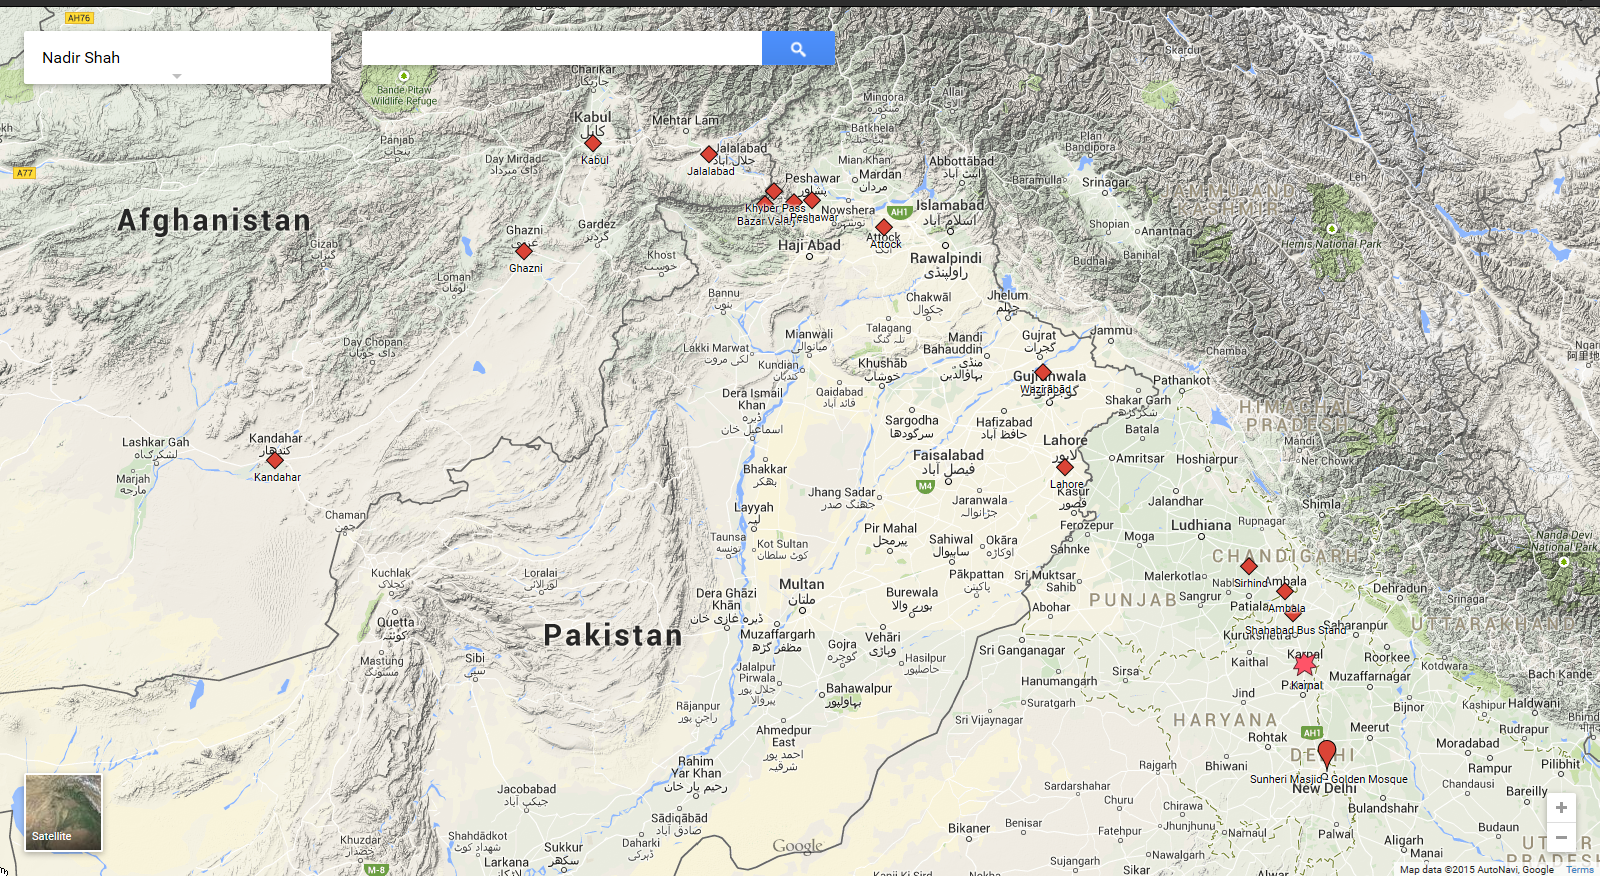 Route of Nadir Shah